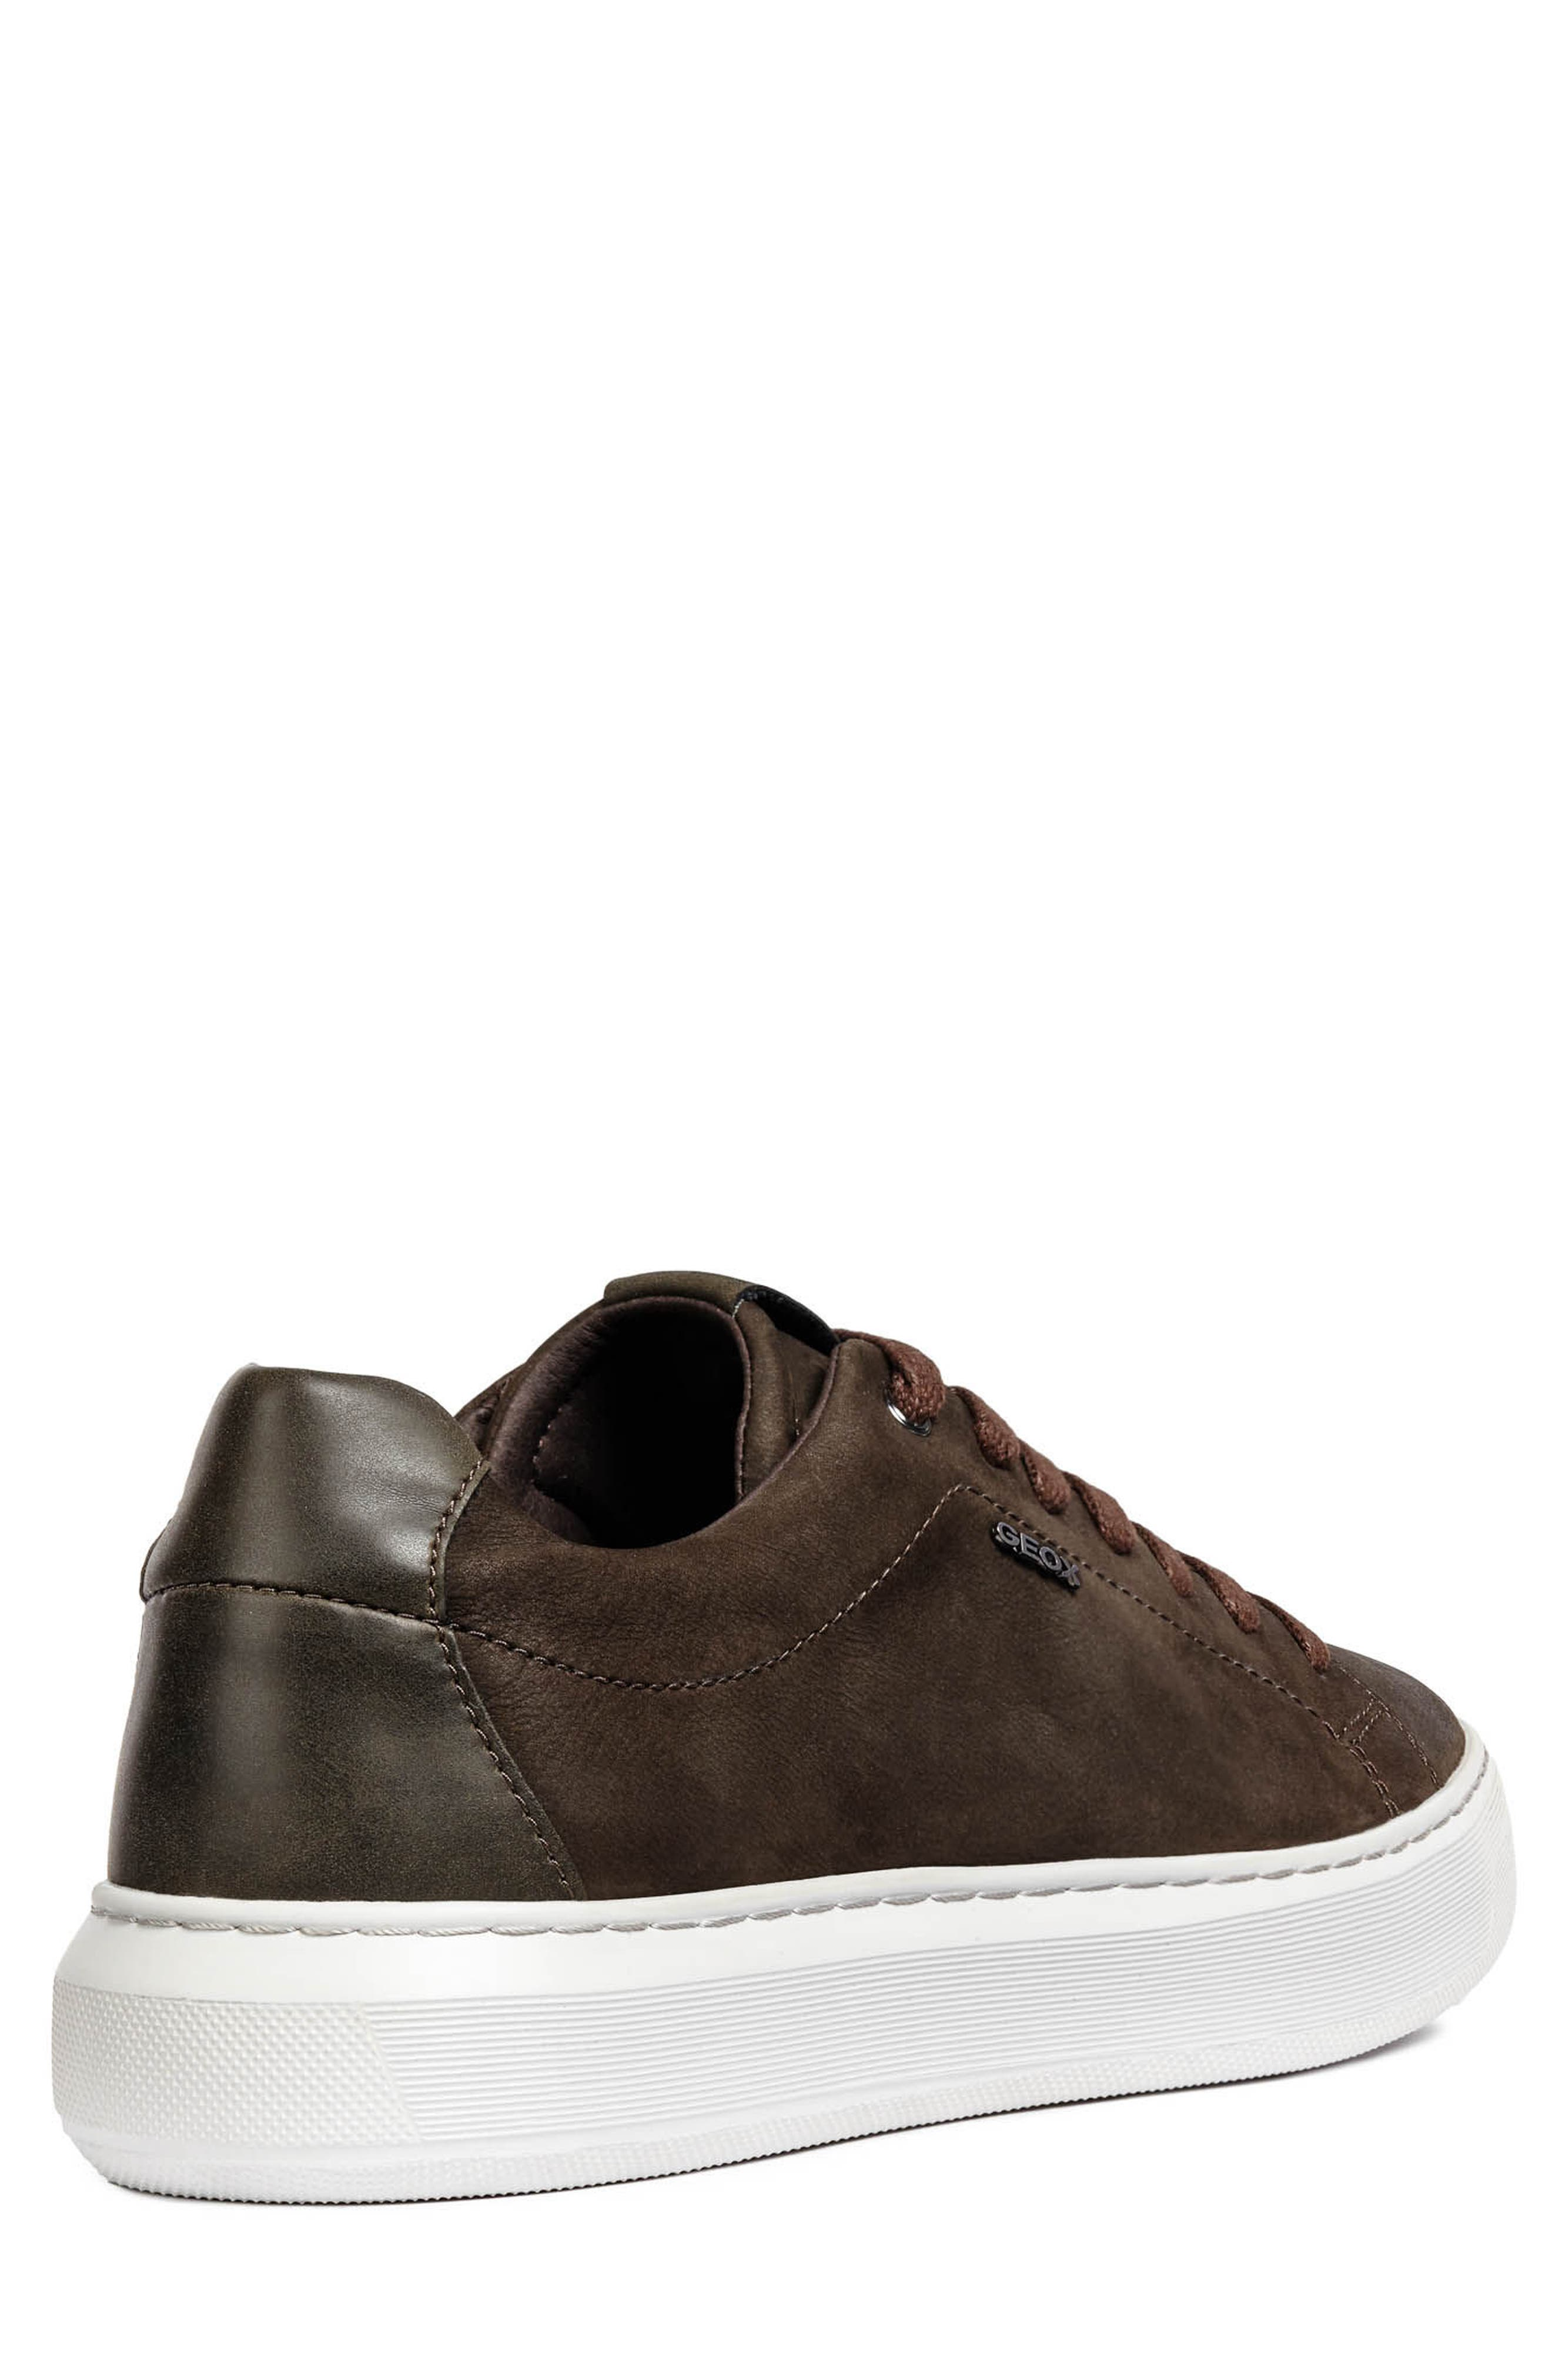 Deiven 5 Low Top Sneaker,                             Alternate thumbnail 2, color,                             DARK COFFEE LEATHER